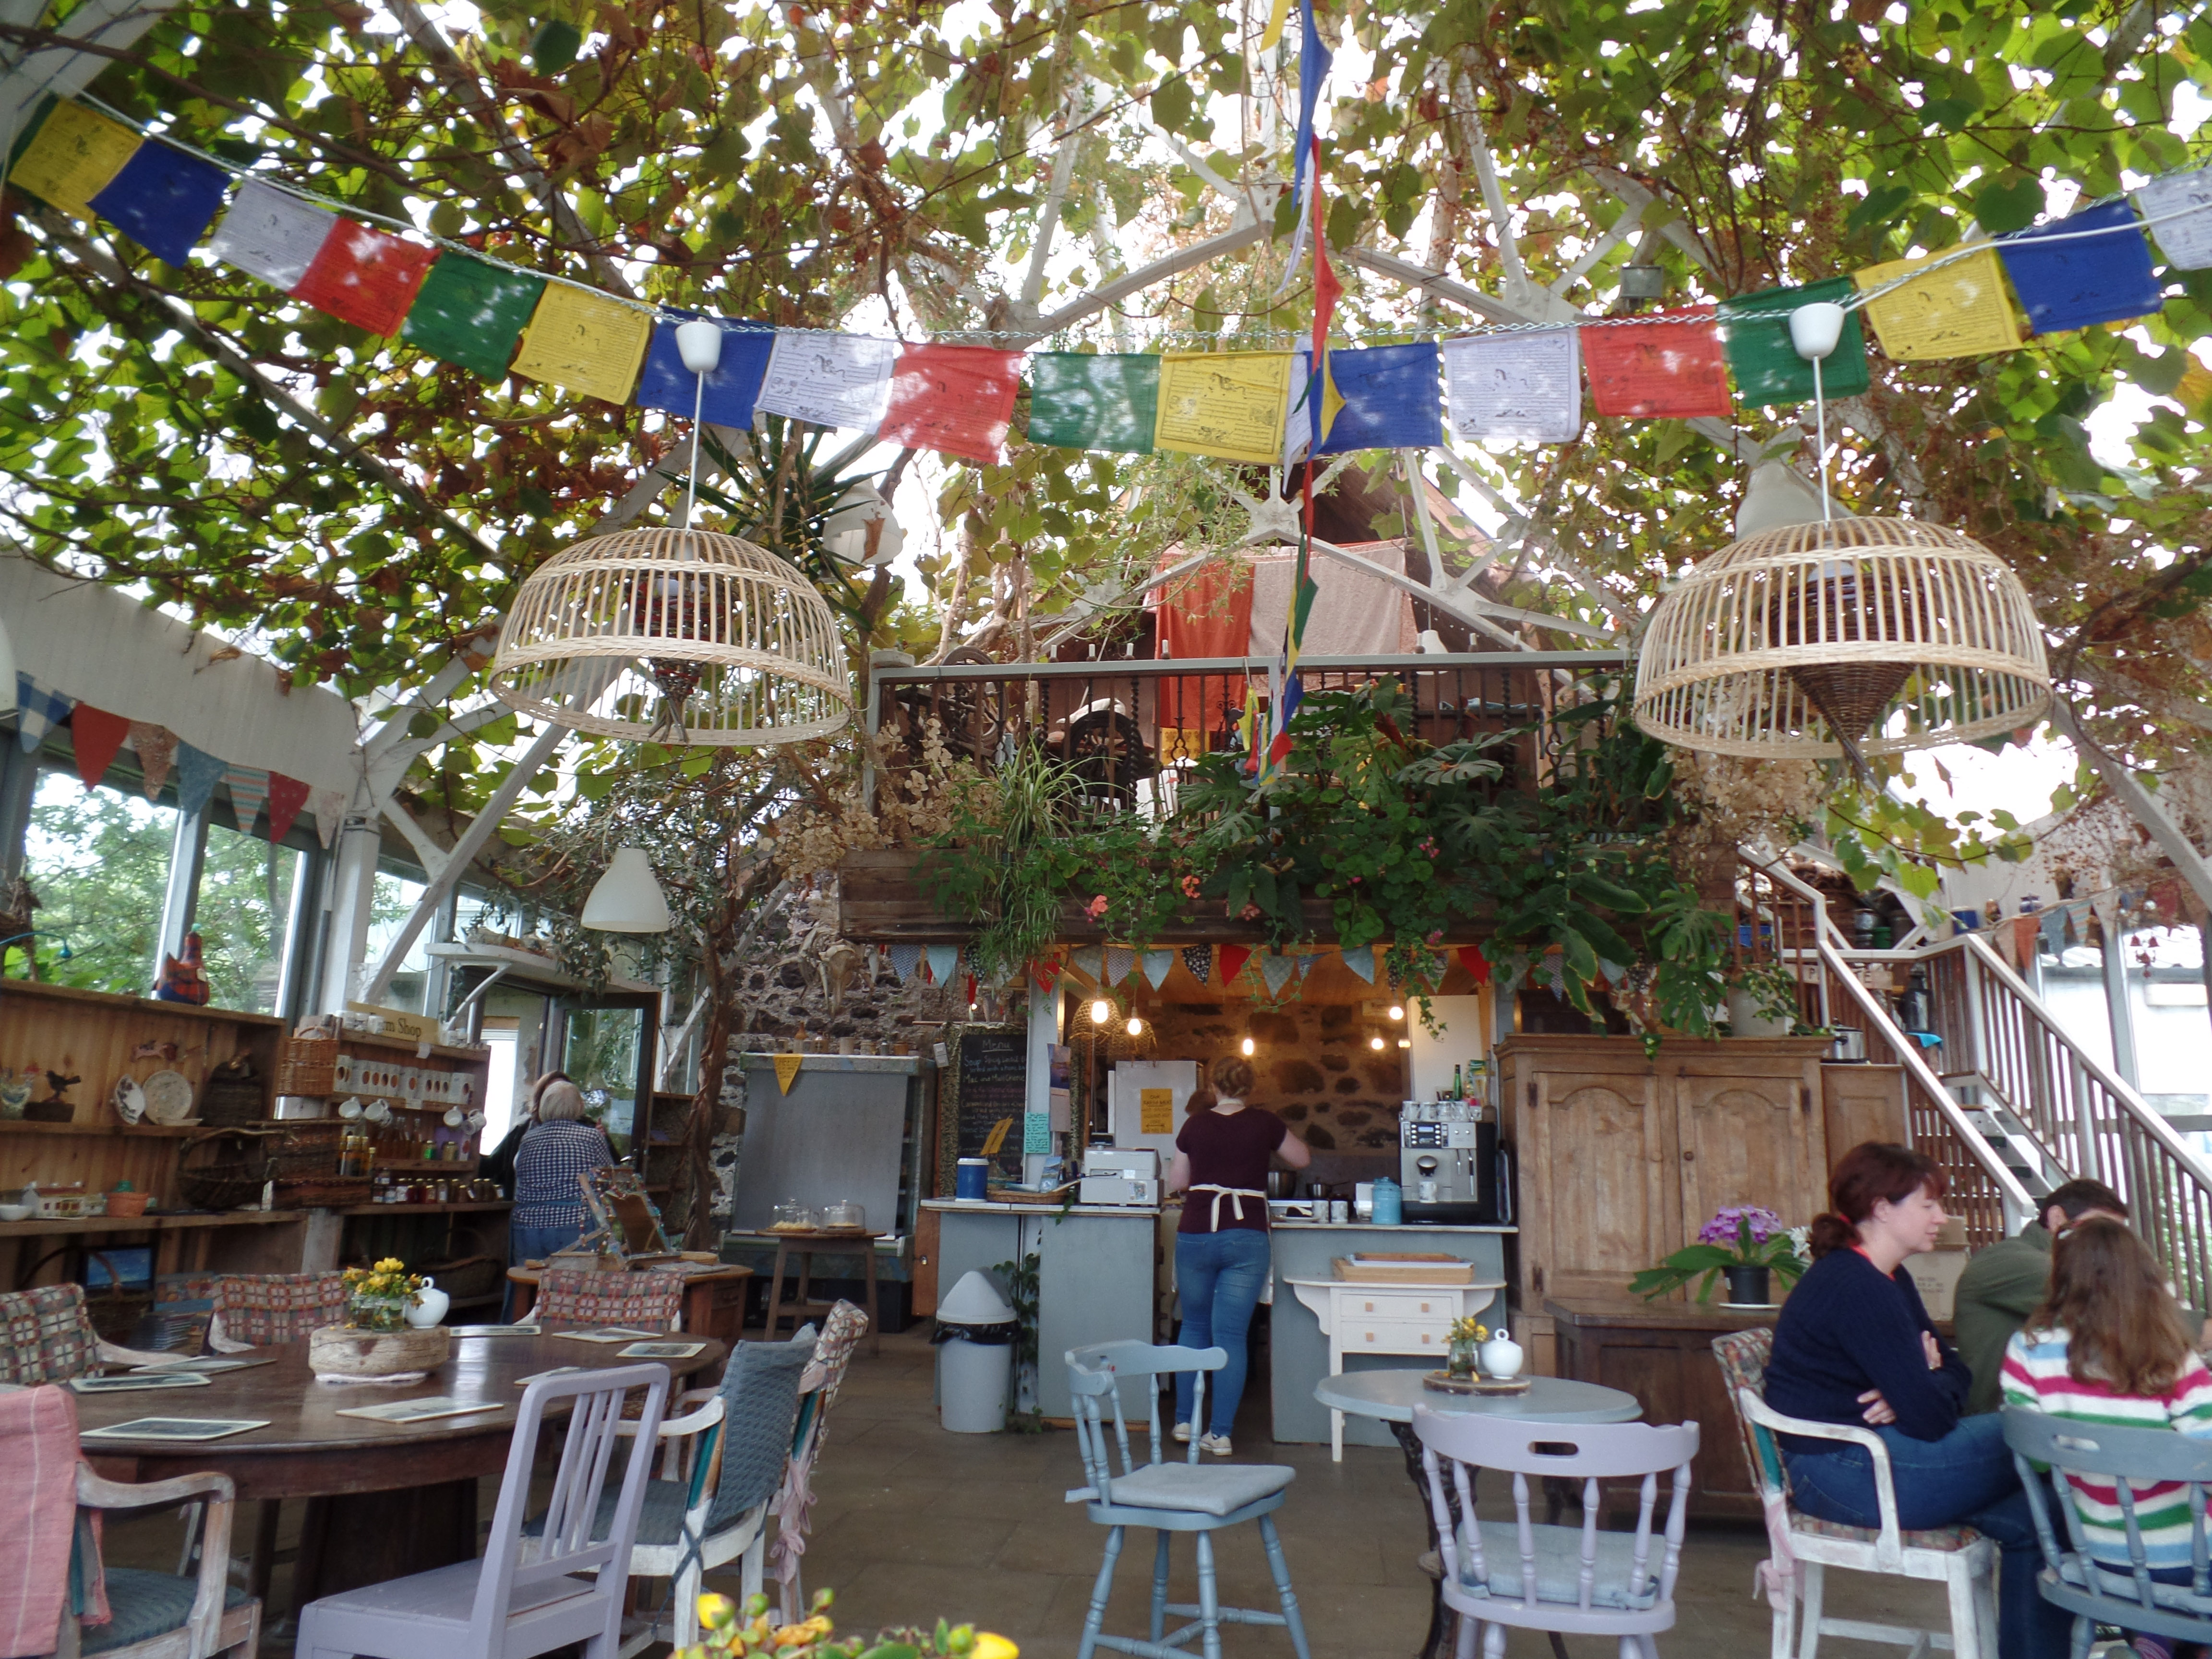 The Glass Barn Cafe and Shop at Isle of Mull Cheese